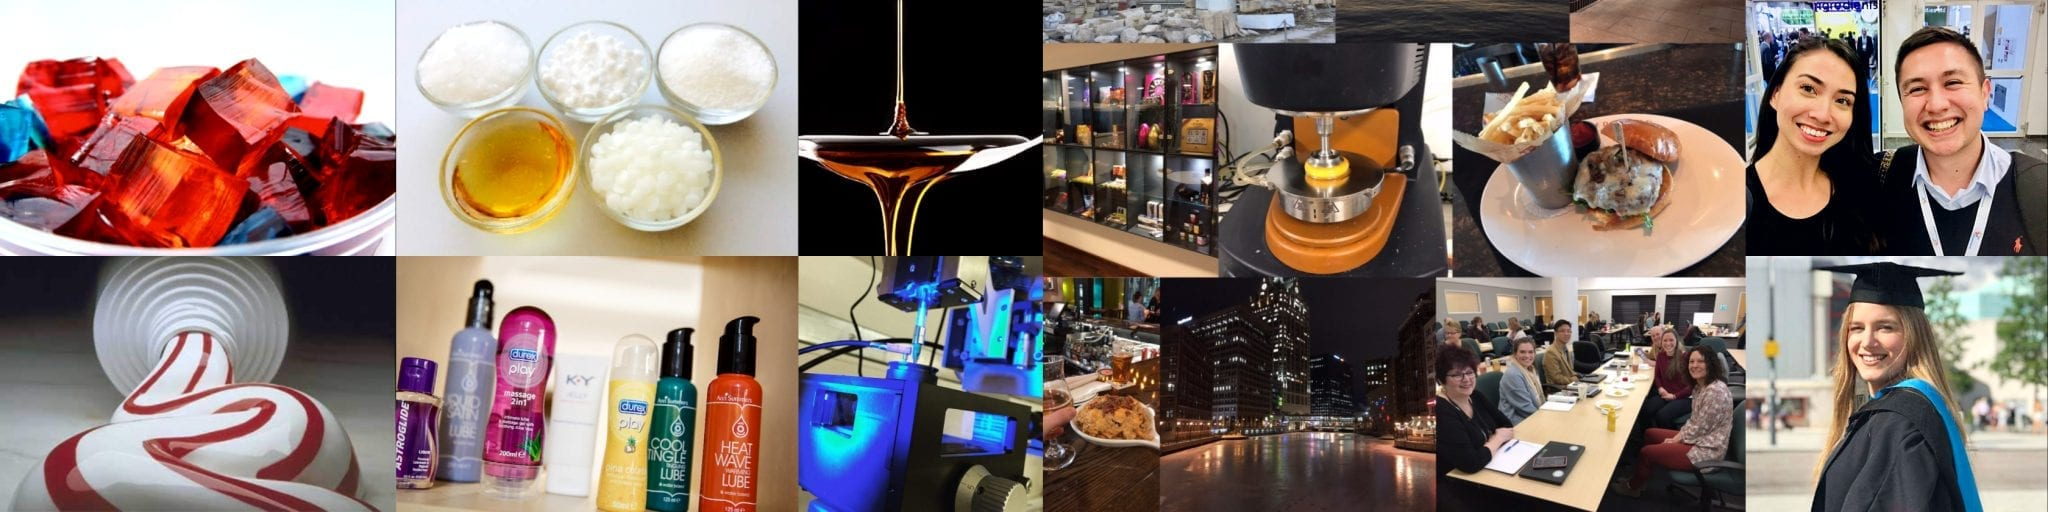 Collage of products and tests